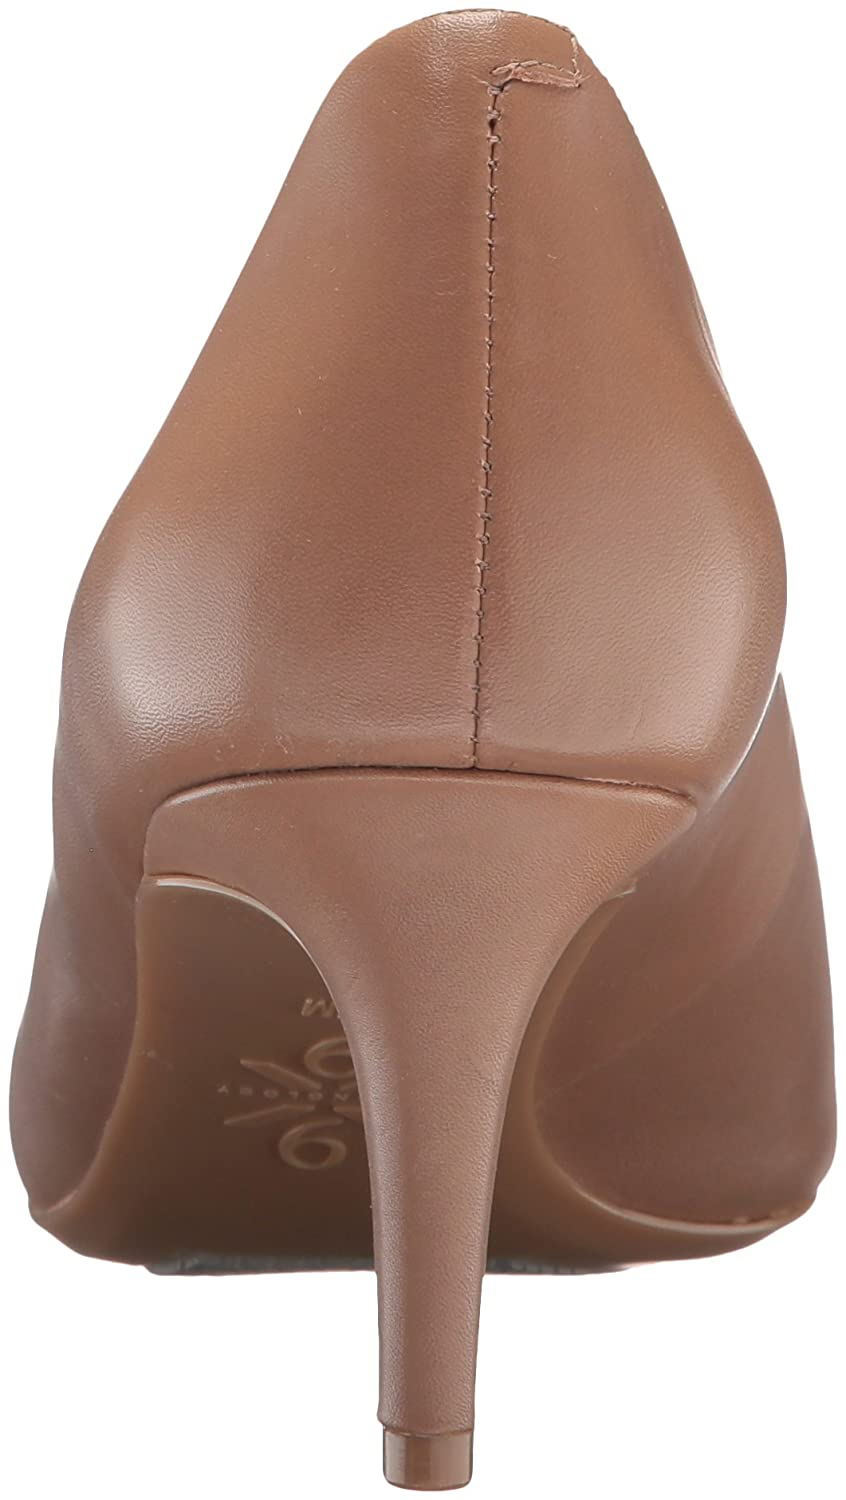 Nine West Women's SOHO9X9 Leather US|Natural Pump B01MUCXDMK 6.5 B(M) US|Natural Leather 68ce52